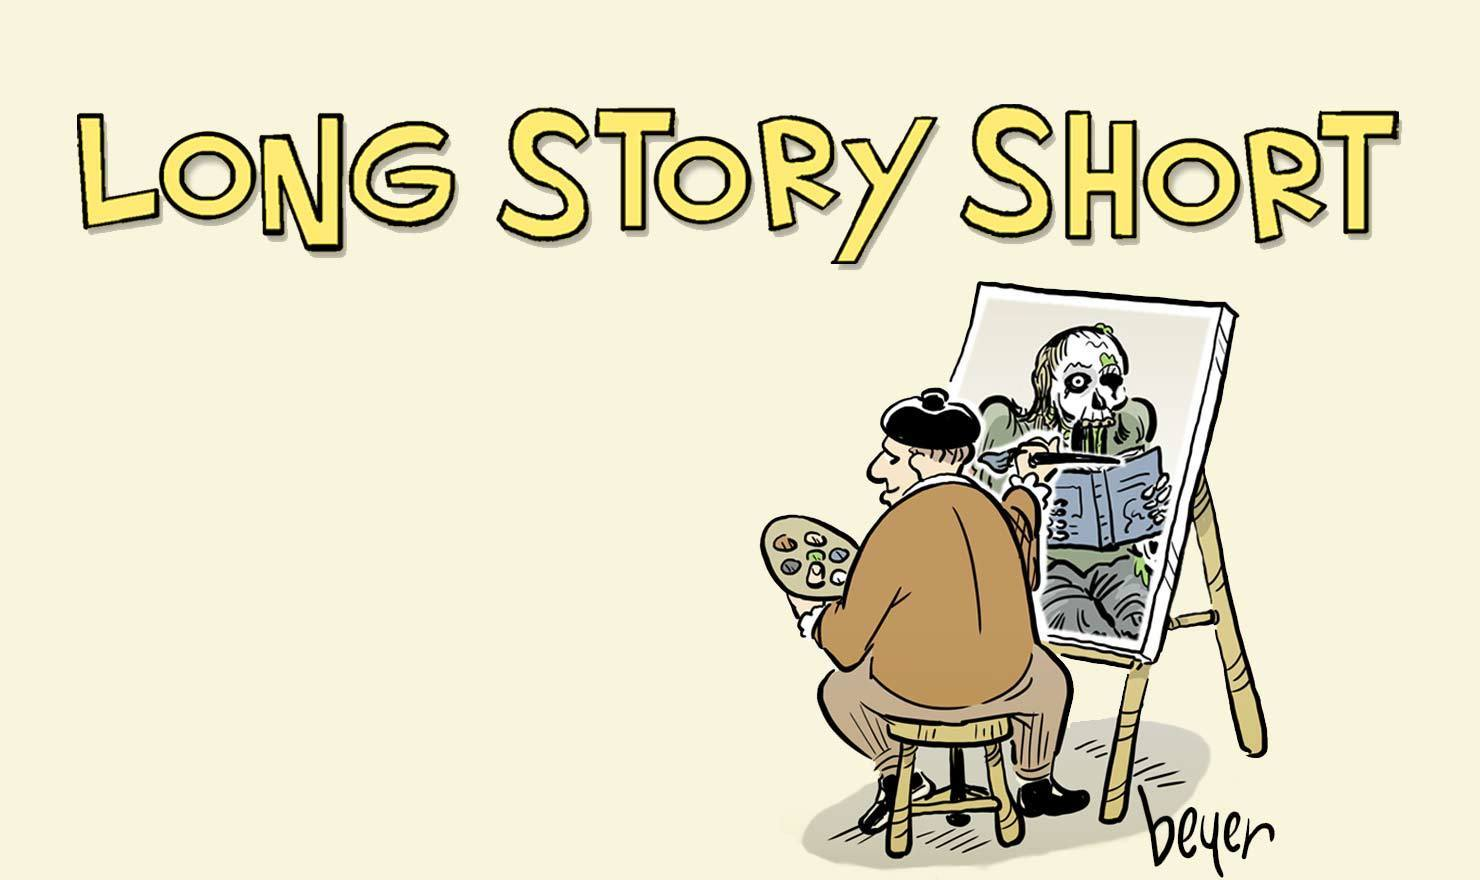 New Comic Alert:  'Long Story Short' By Daniel Beyer